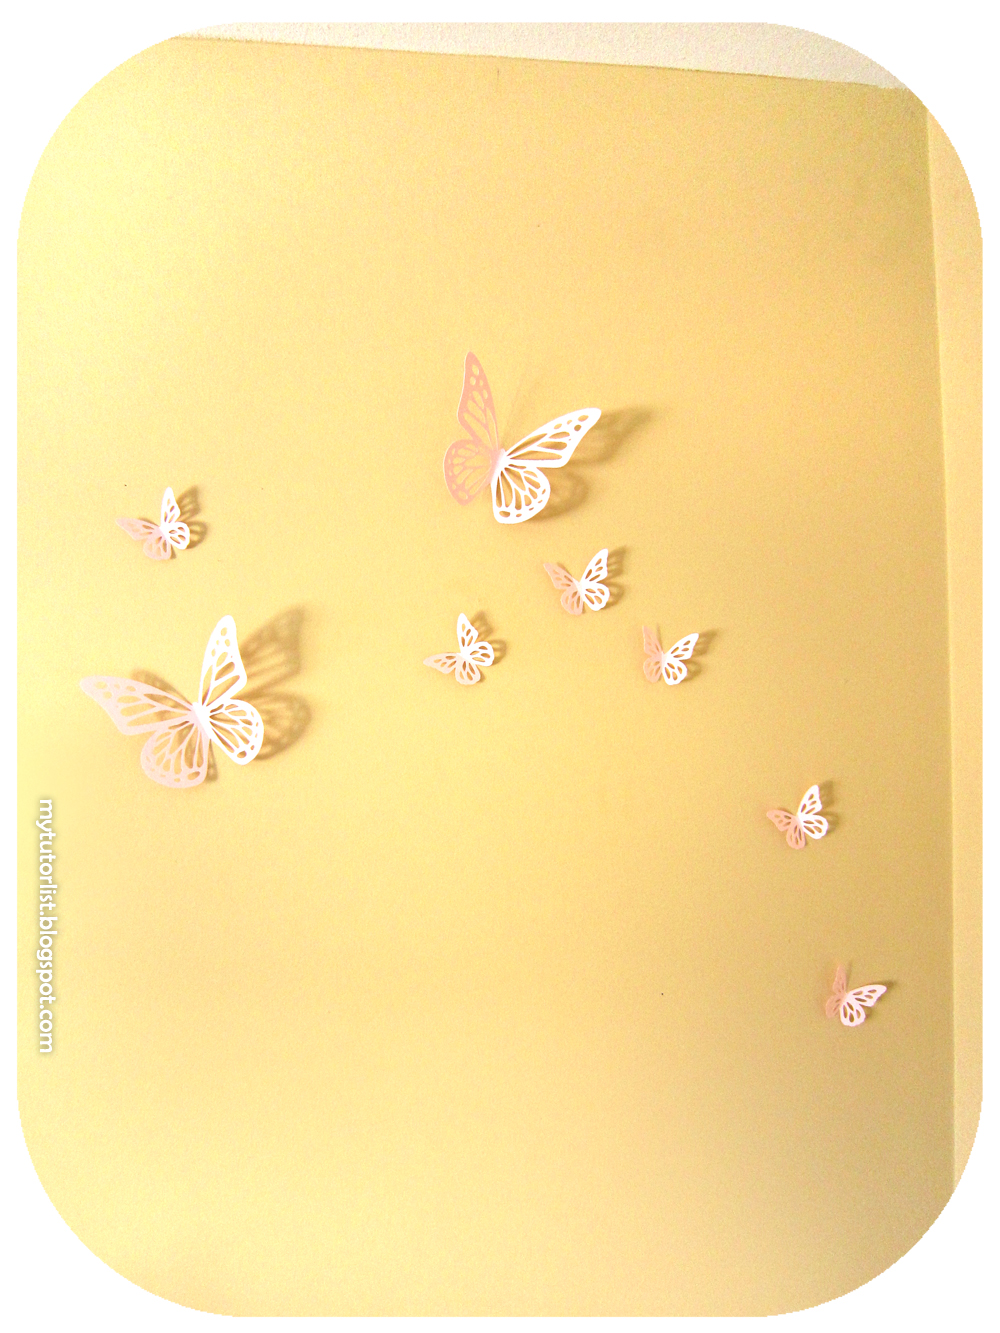 Butterfly Wall Art Decor Tutorial : Behind Mytutorlist.com